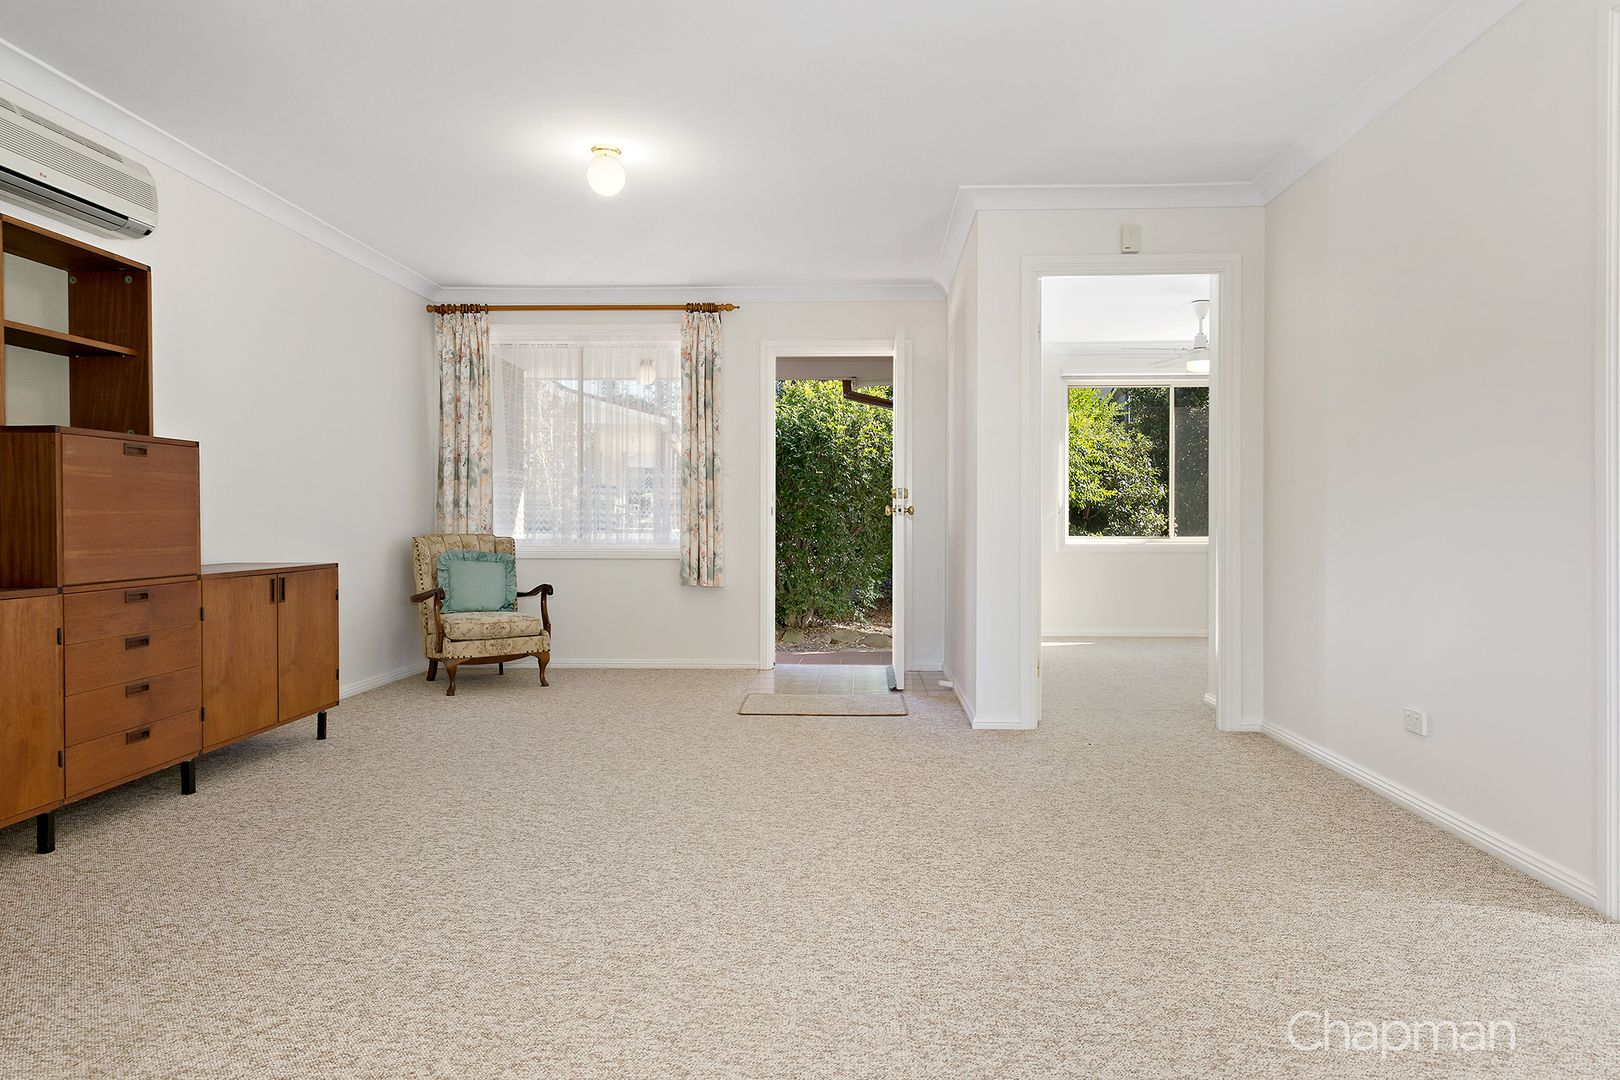 6/56 Old Bathurst Road, Blaxland NSW 2774, Image 2